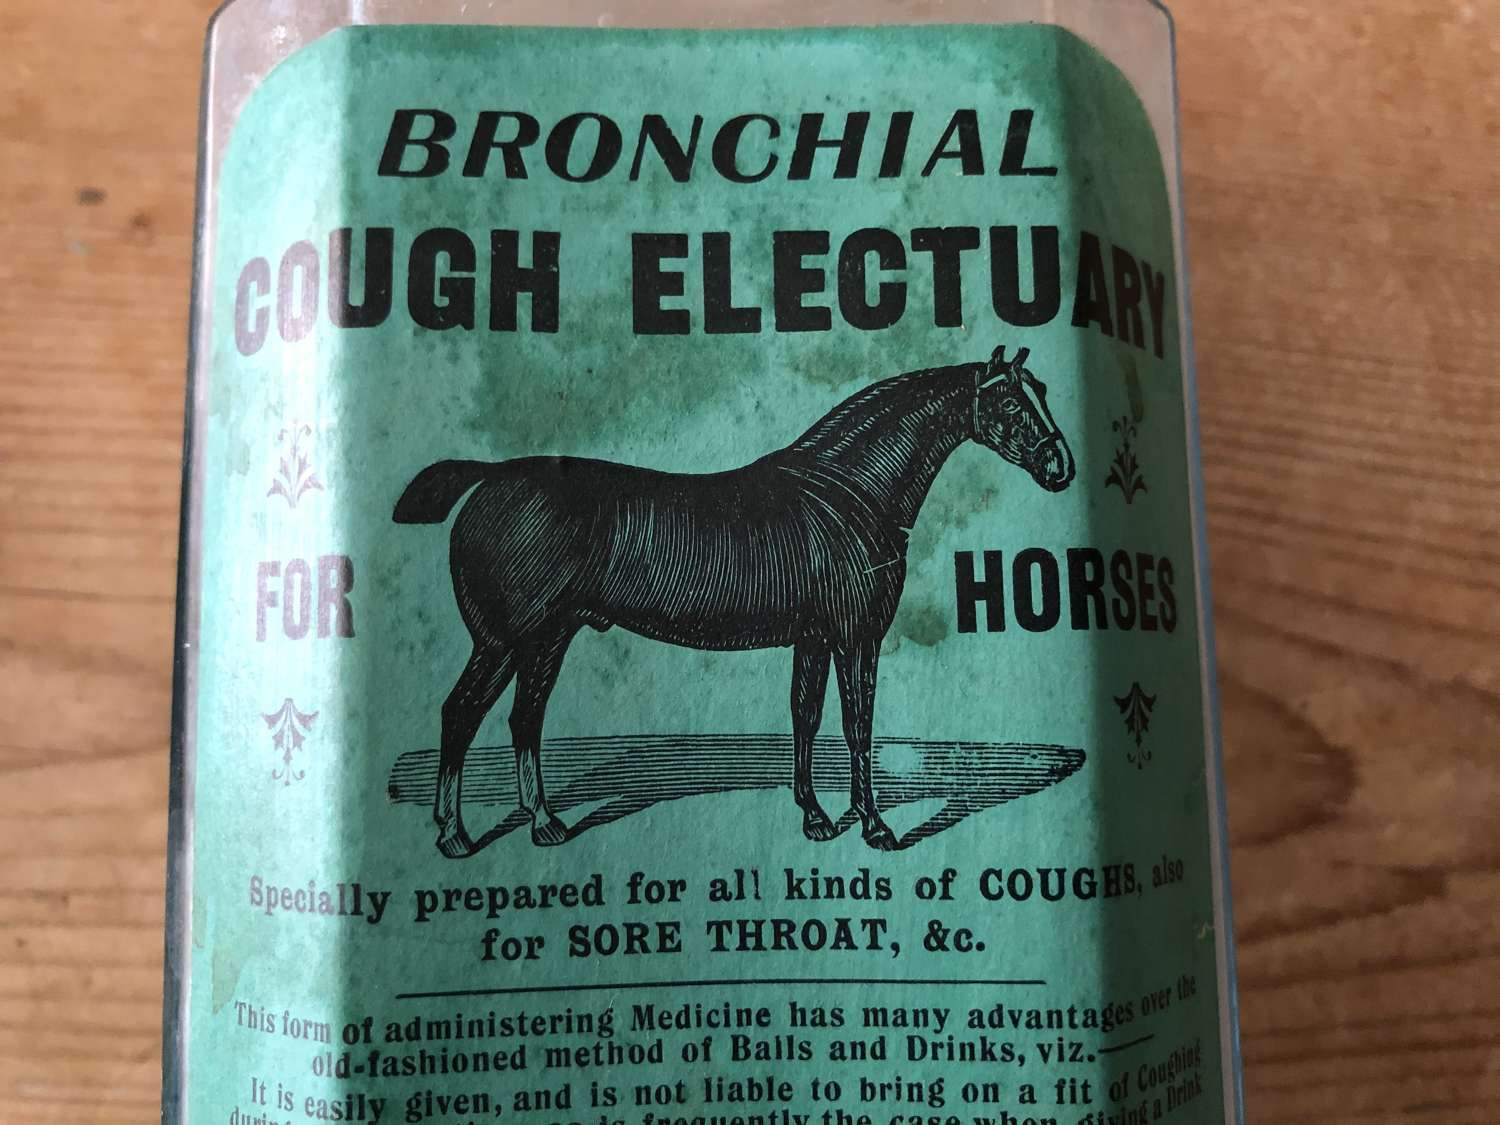 Bronchial Cough Electuary for HORSES